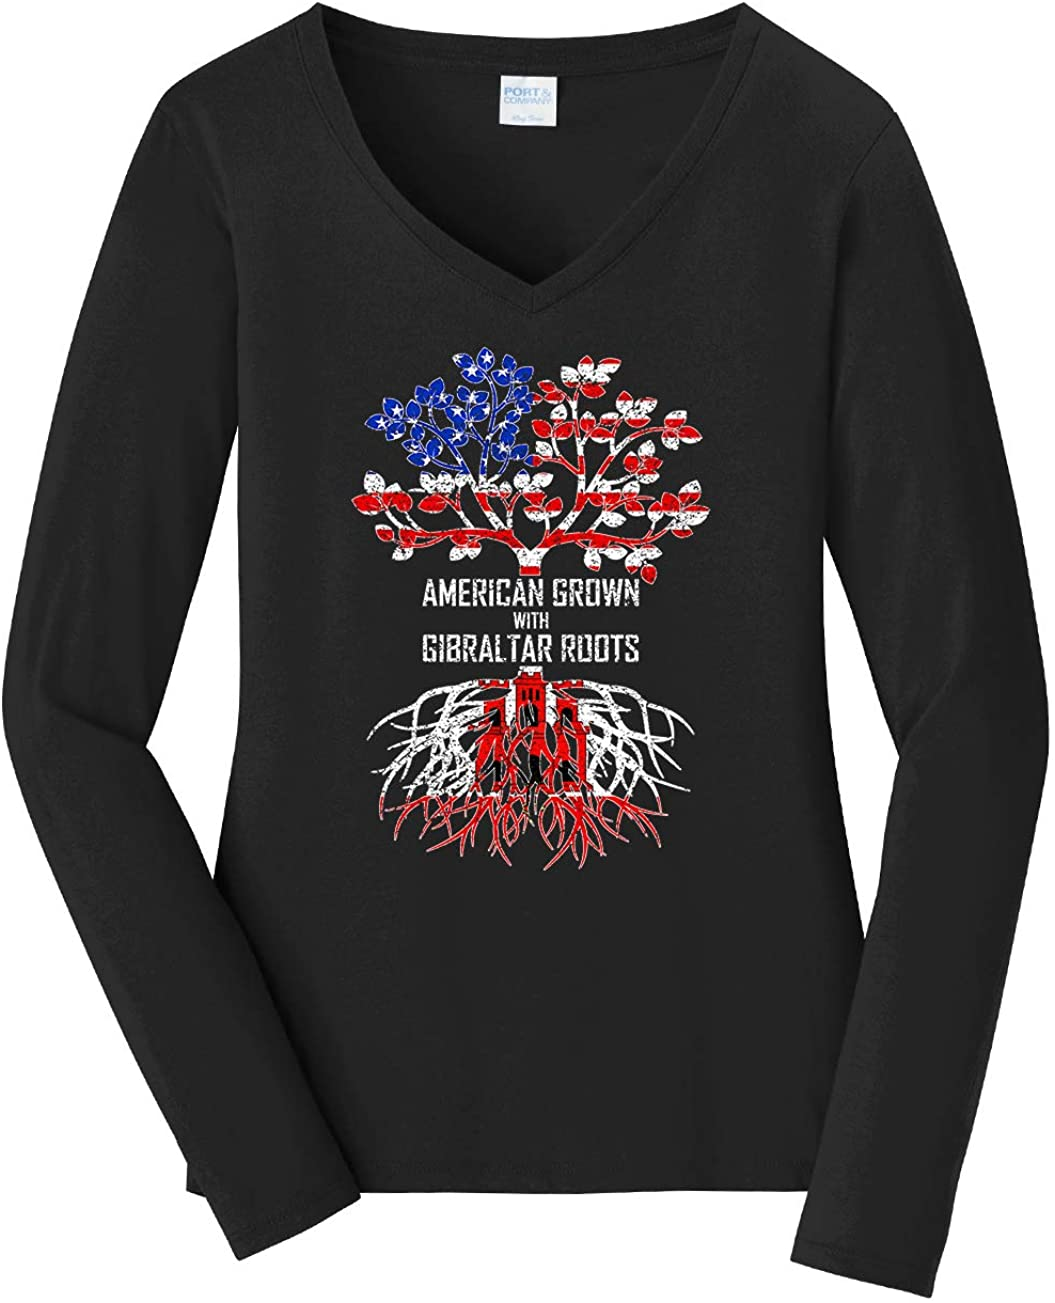 Tenacitee Women's American Grown with Gibraltar Roots Long Sleeve T-Shirt